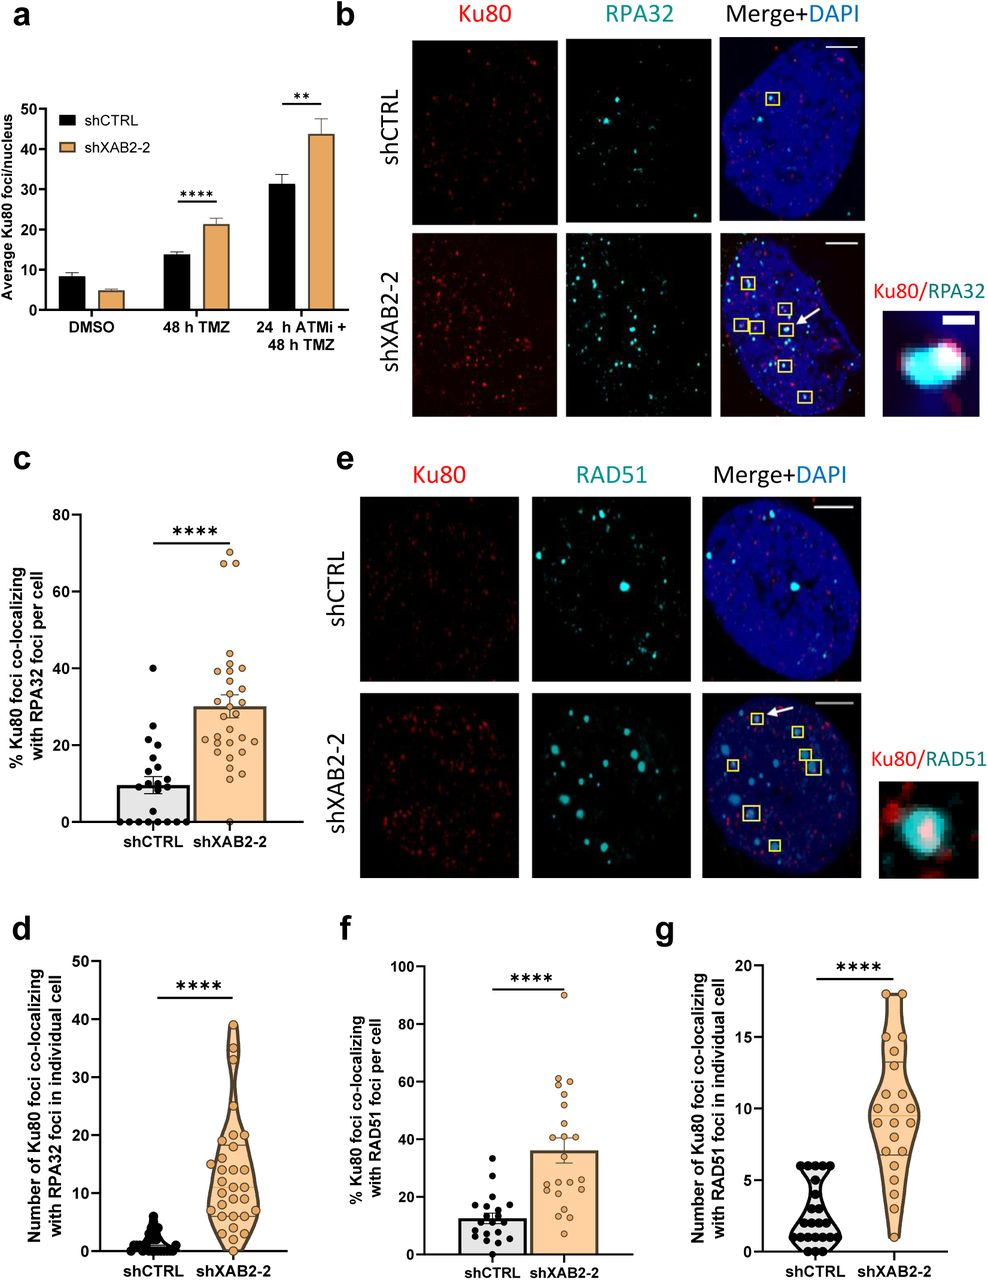 XAB2 prevents Ku retention on seDSBs induced by temozolomide. a , Quantification of the average number of Ku80 foci detected by immunofluorescence microscopy in control and XAB2-depleted U87 cells exposed to 15 μM TMZ (or DMSO) for 2 h and allowed to recover for 48 h in the absence or presence of the <t>ATMi</t> KU-55933. b , Representative immunofluorescence images used for the quantification of the number of colocalizing Ku80 (red)-RPA32 (cyan) foci following exposure of control and XAB2-depleted U87 cells to TMZ and recovery for 48 h. Examples of colocalized foci are highlighted by yellow squares, with one representative example (indicated by an arrow) shown in the close up section (scale bar = 0.1 μm). c - d , Percentage of colocalized Ku80-RPA32 foci per cell following exposure to TMZ as in c , quantified based on foci examination in individual cells, as presented in a violin plot ( d ). e - g , Same as b - d for the analysis of Ku80 (red) and RAD51 (cyan) foci colocalization. Scale bar = 5µm. The images are representative of 3 independent biological repeats. Bars represent mean ± s.e.m. Significant differences between specified comparisons were assessed by a t-test (unpaired, 2-tails) and are highlighted by stars (*P